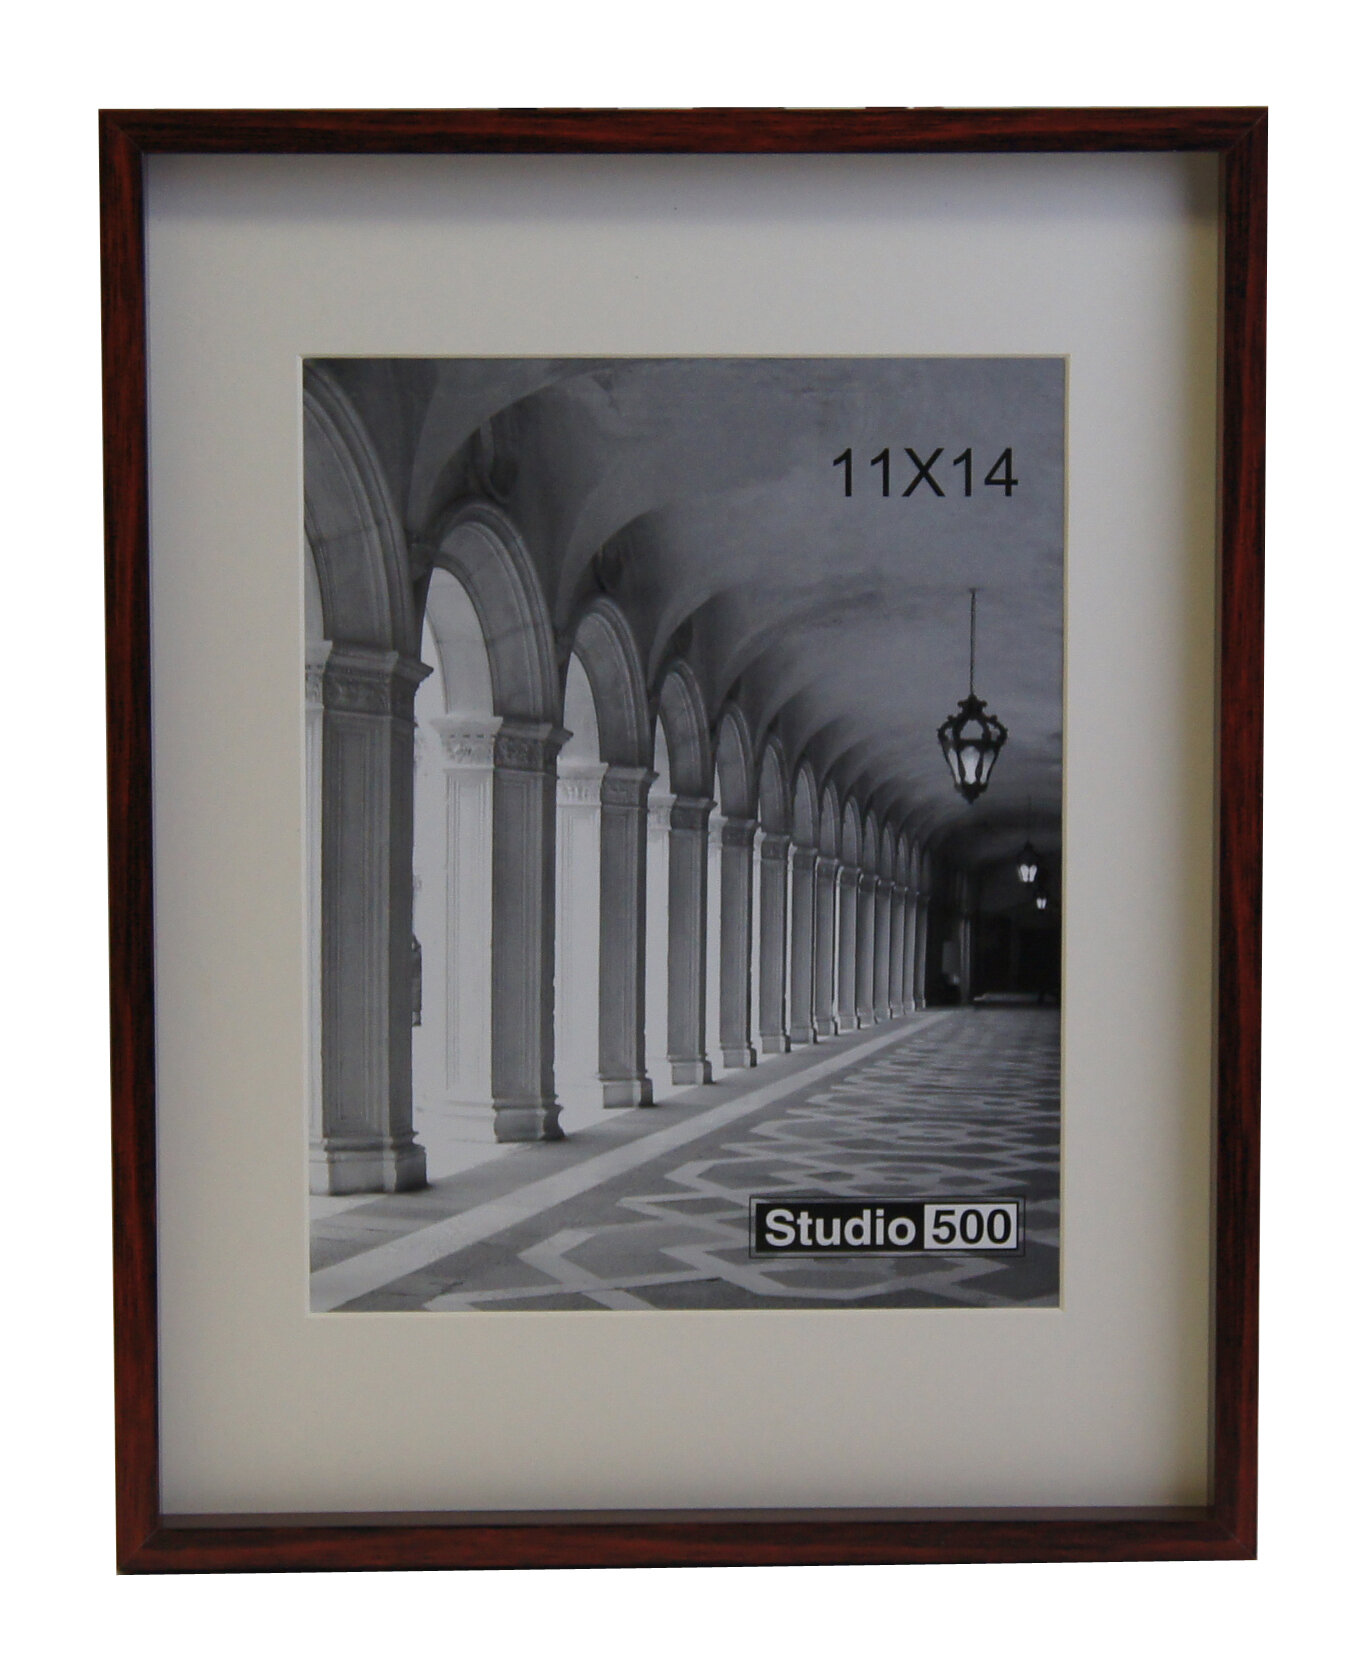 Studio 500 Rustic Modern Country Picture Frame & Reviews | Wayfair